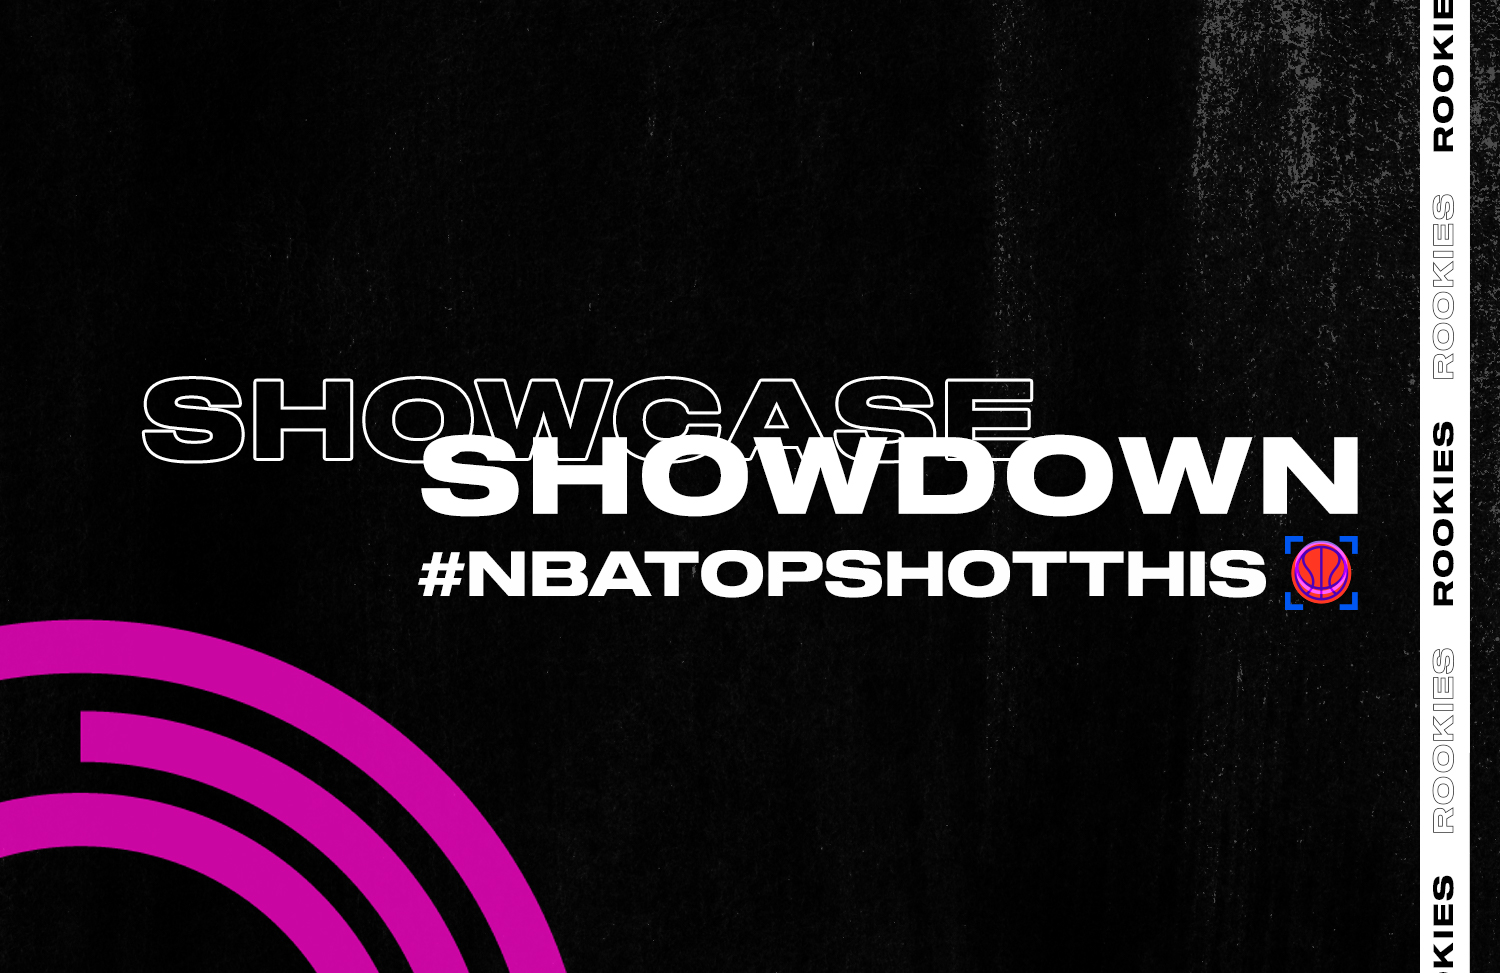 Featuring rookies from the 2020 NBA Draft Class in our latest Showcase Showdown